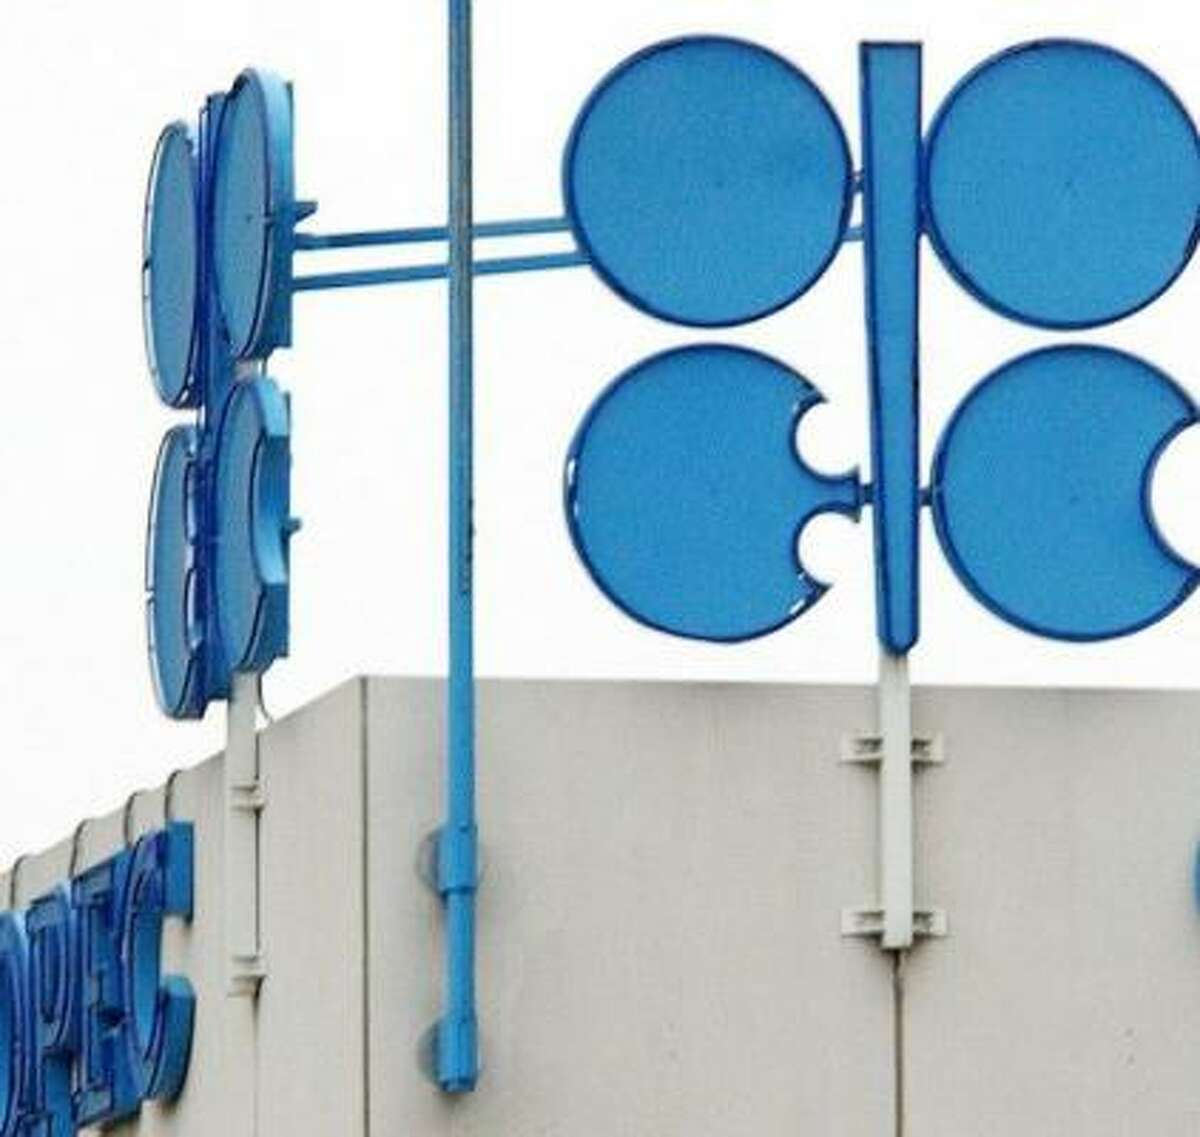 Congress is trying to legislate against OPEC, headquartered in Vienna.